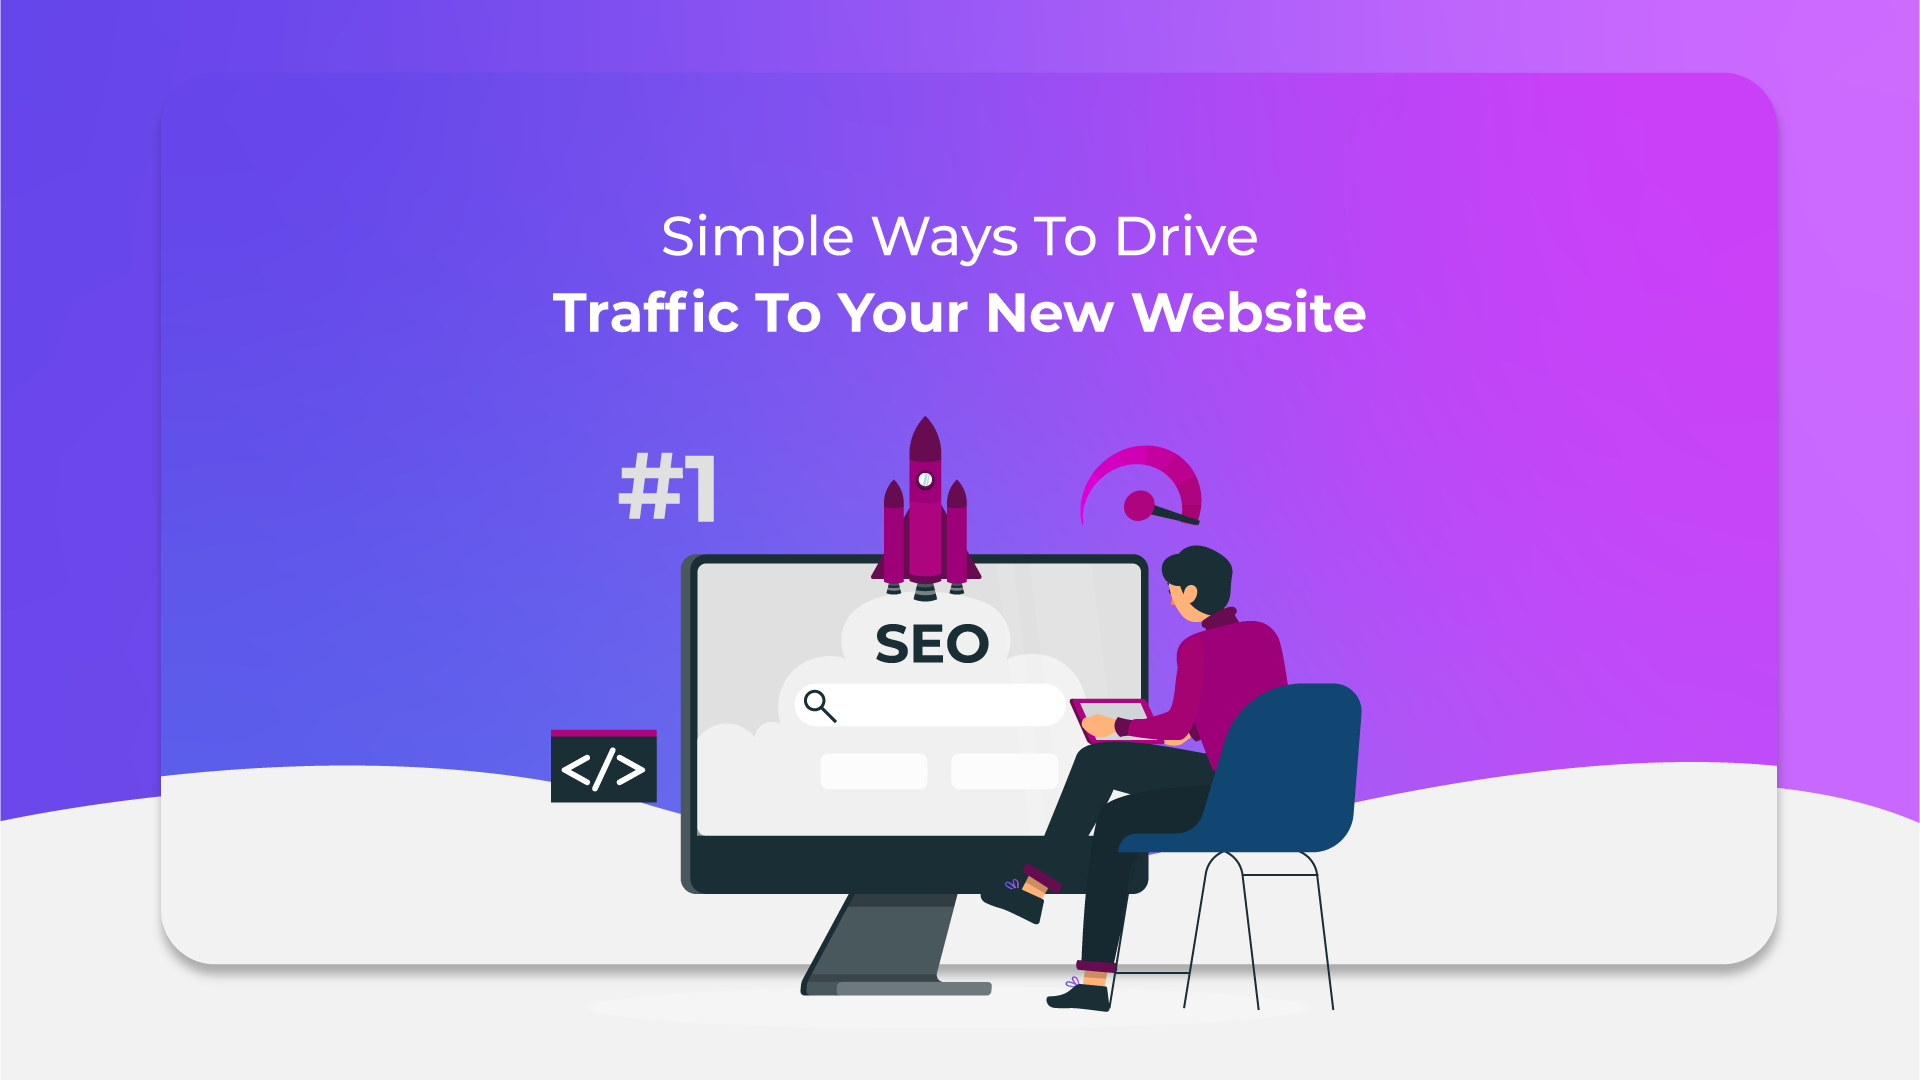 Simple Ways To Drive Traffic To Your New Website